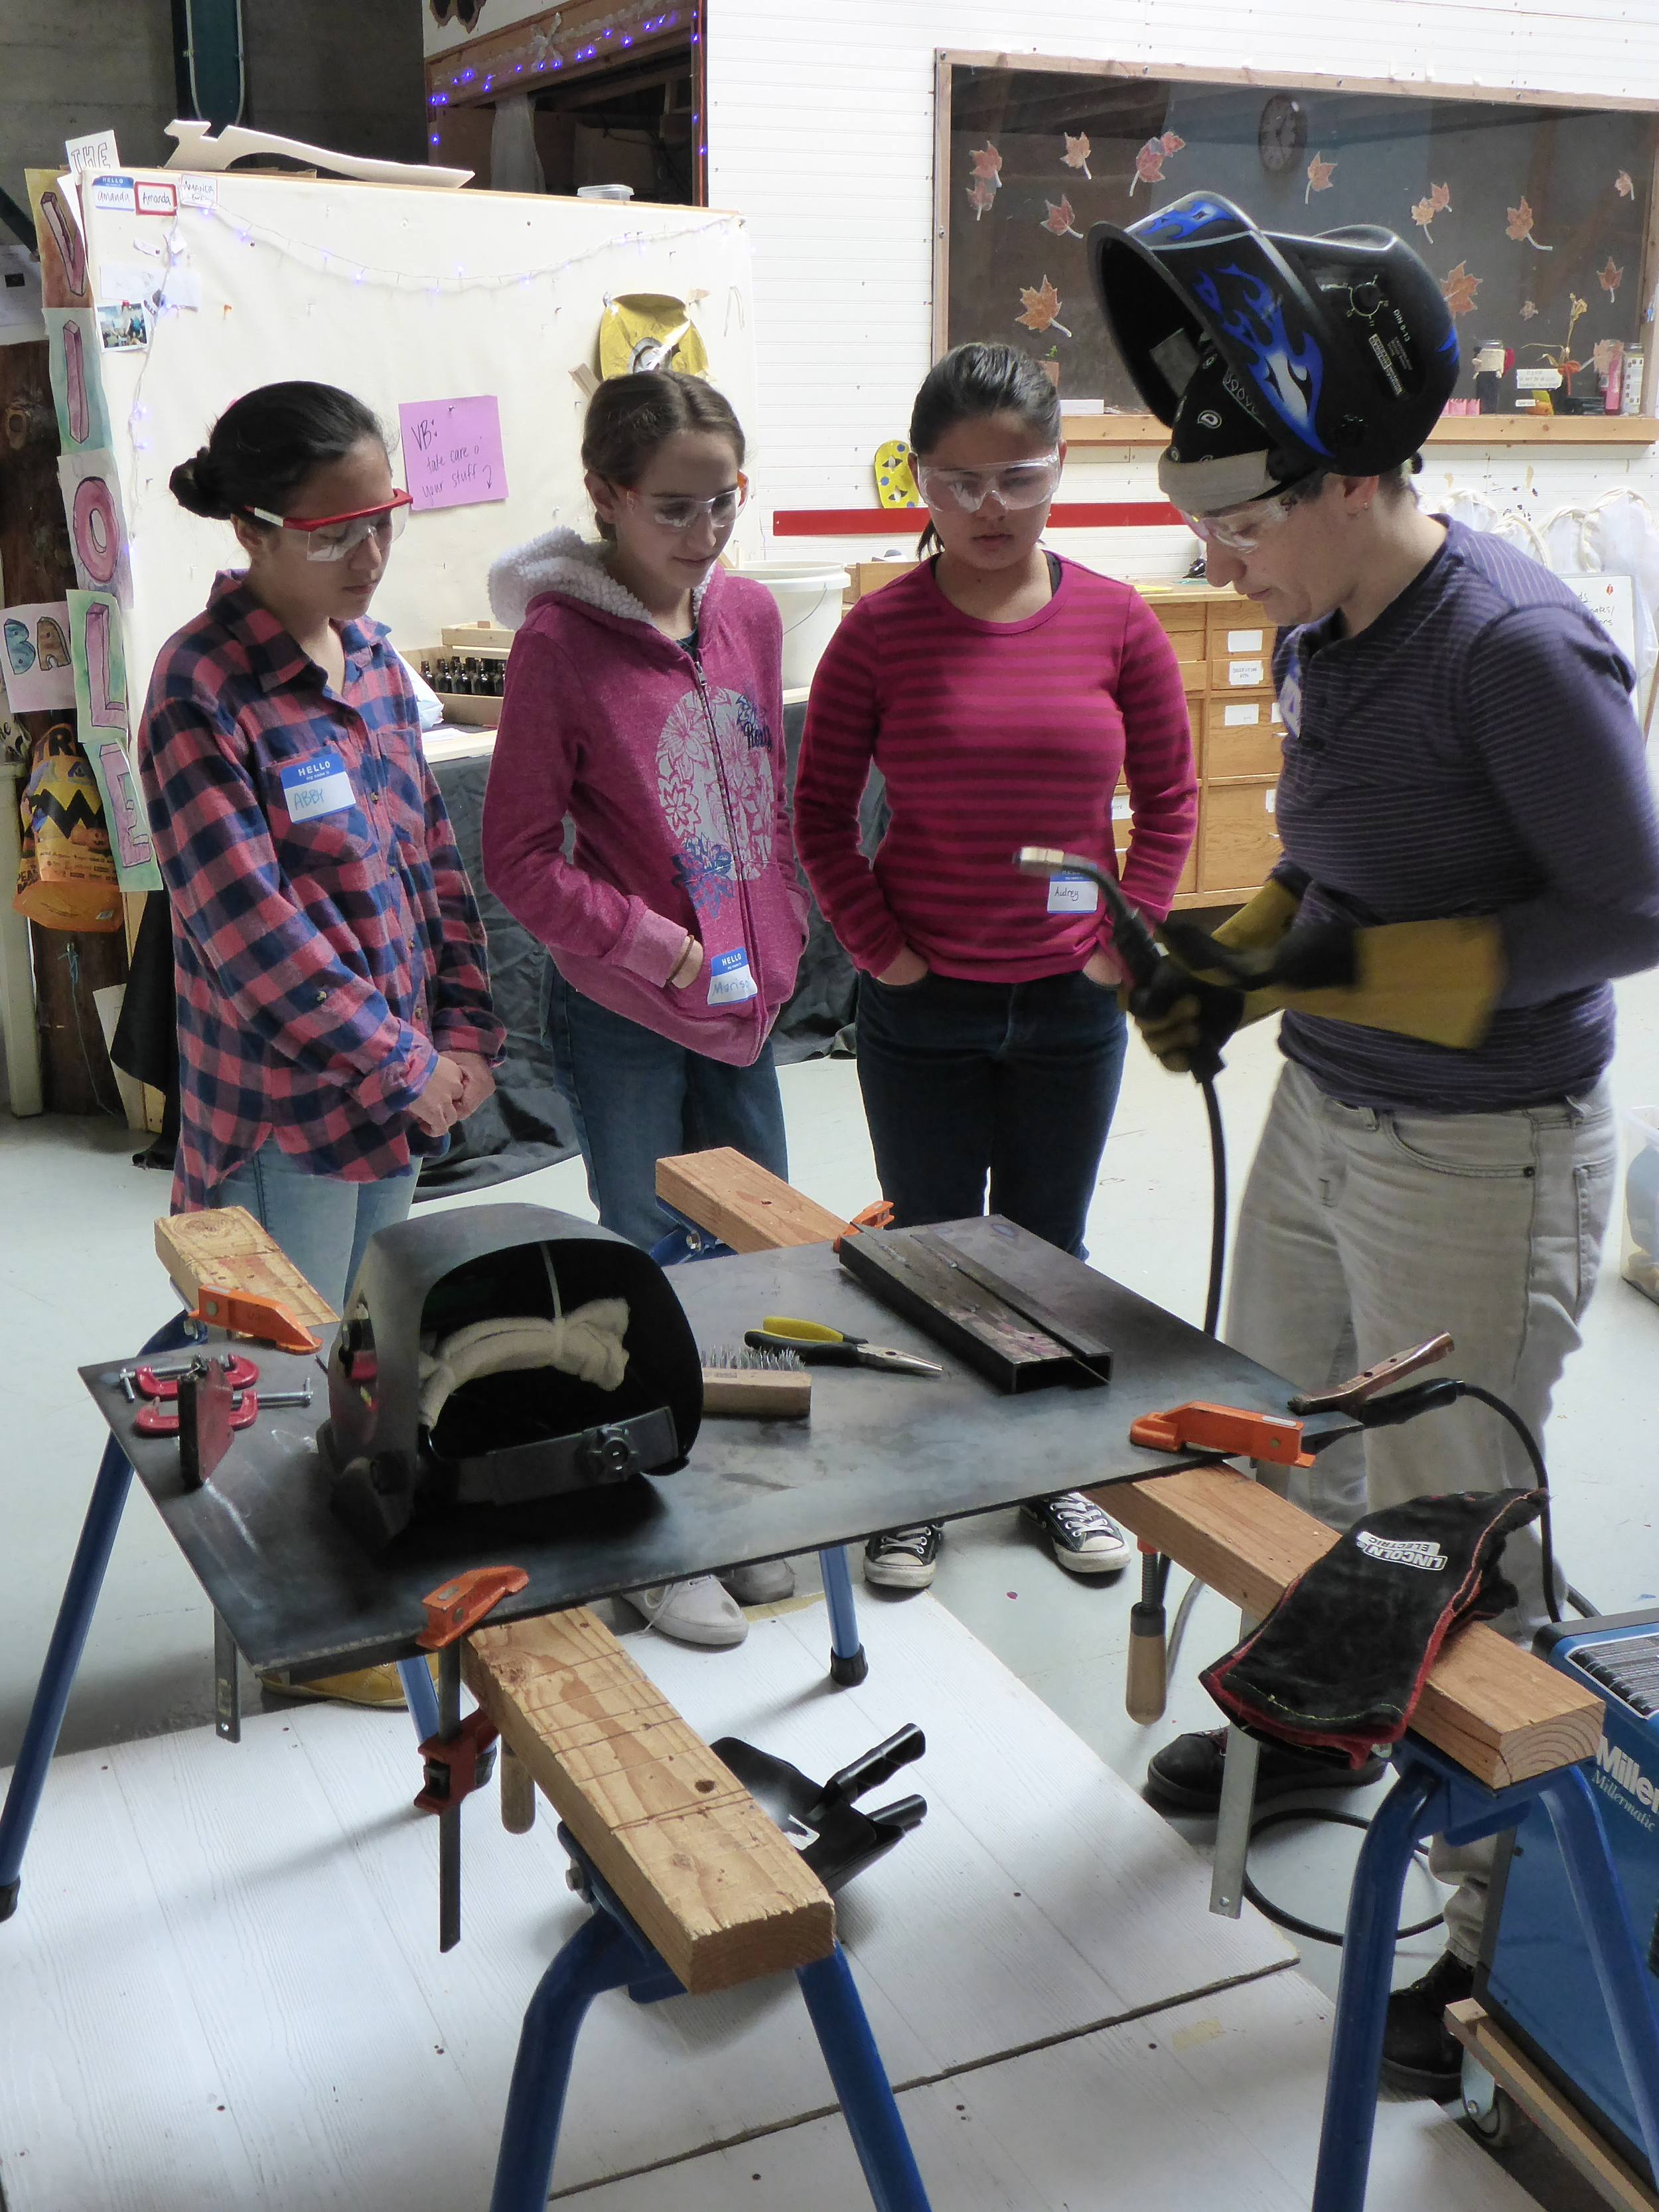 Abby, Marisol, Audrey and Amanda get ready for their first times welding.